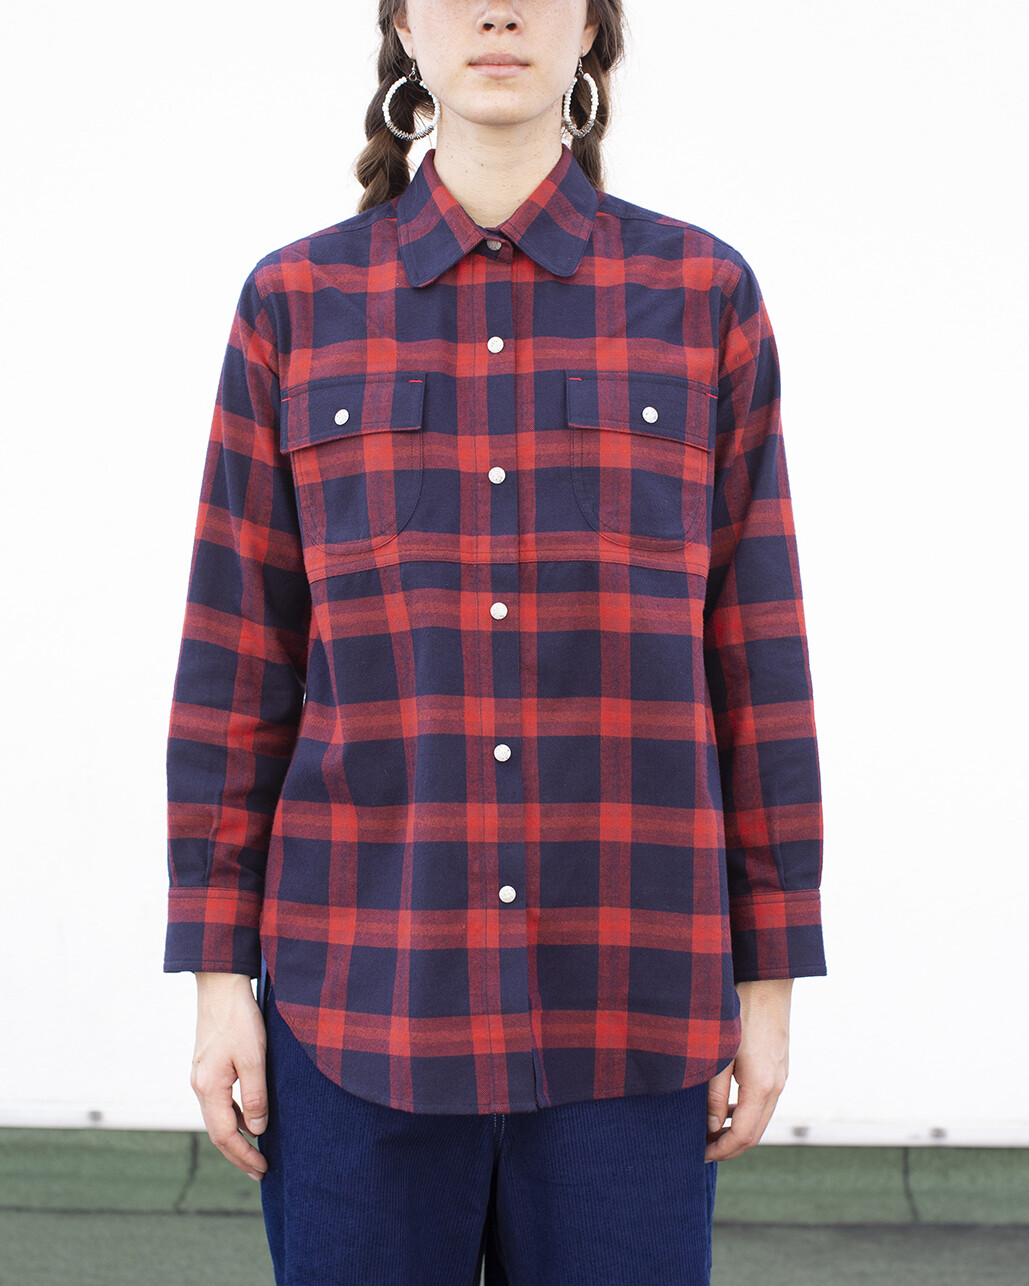 W'MENSWEAR LIMITED CREW SHIRT IN CHECK